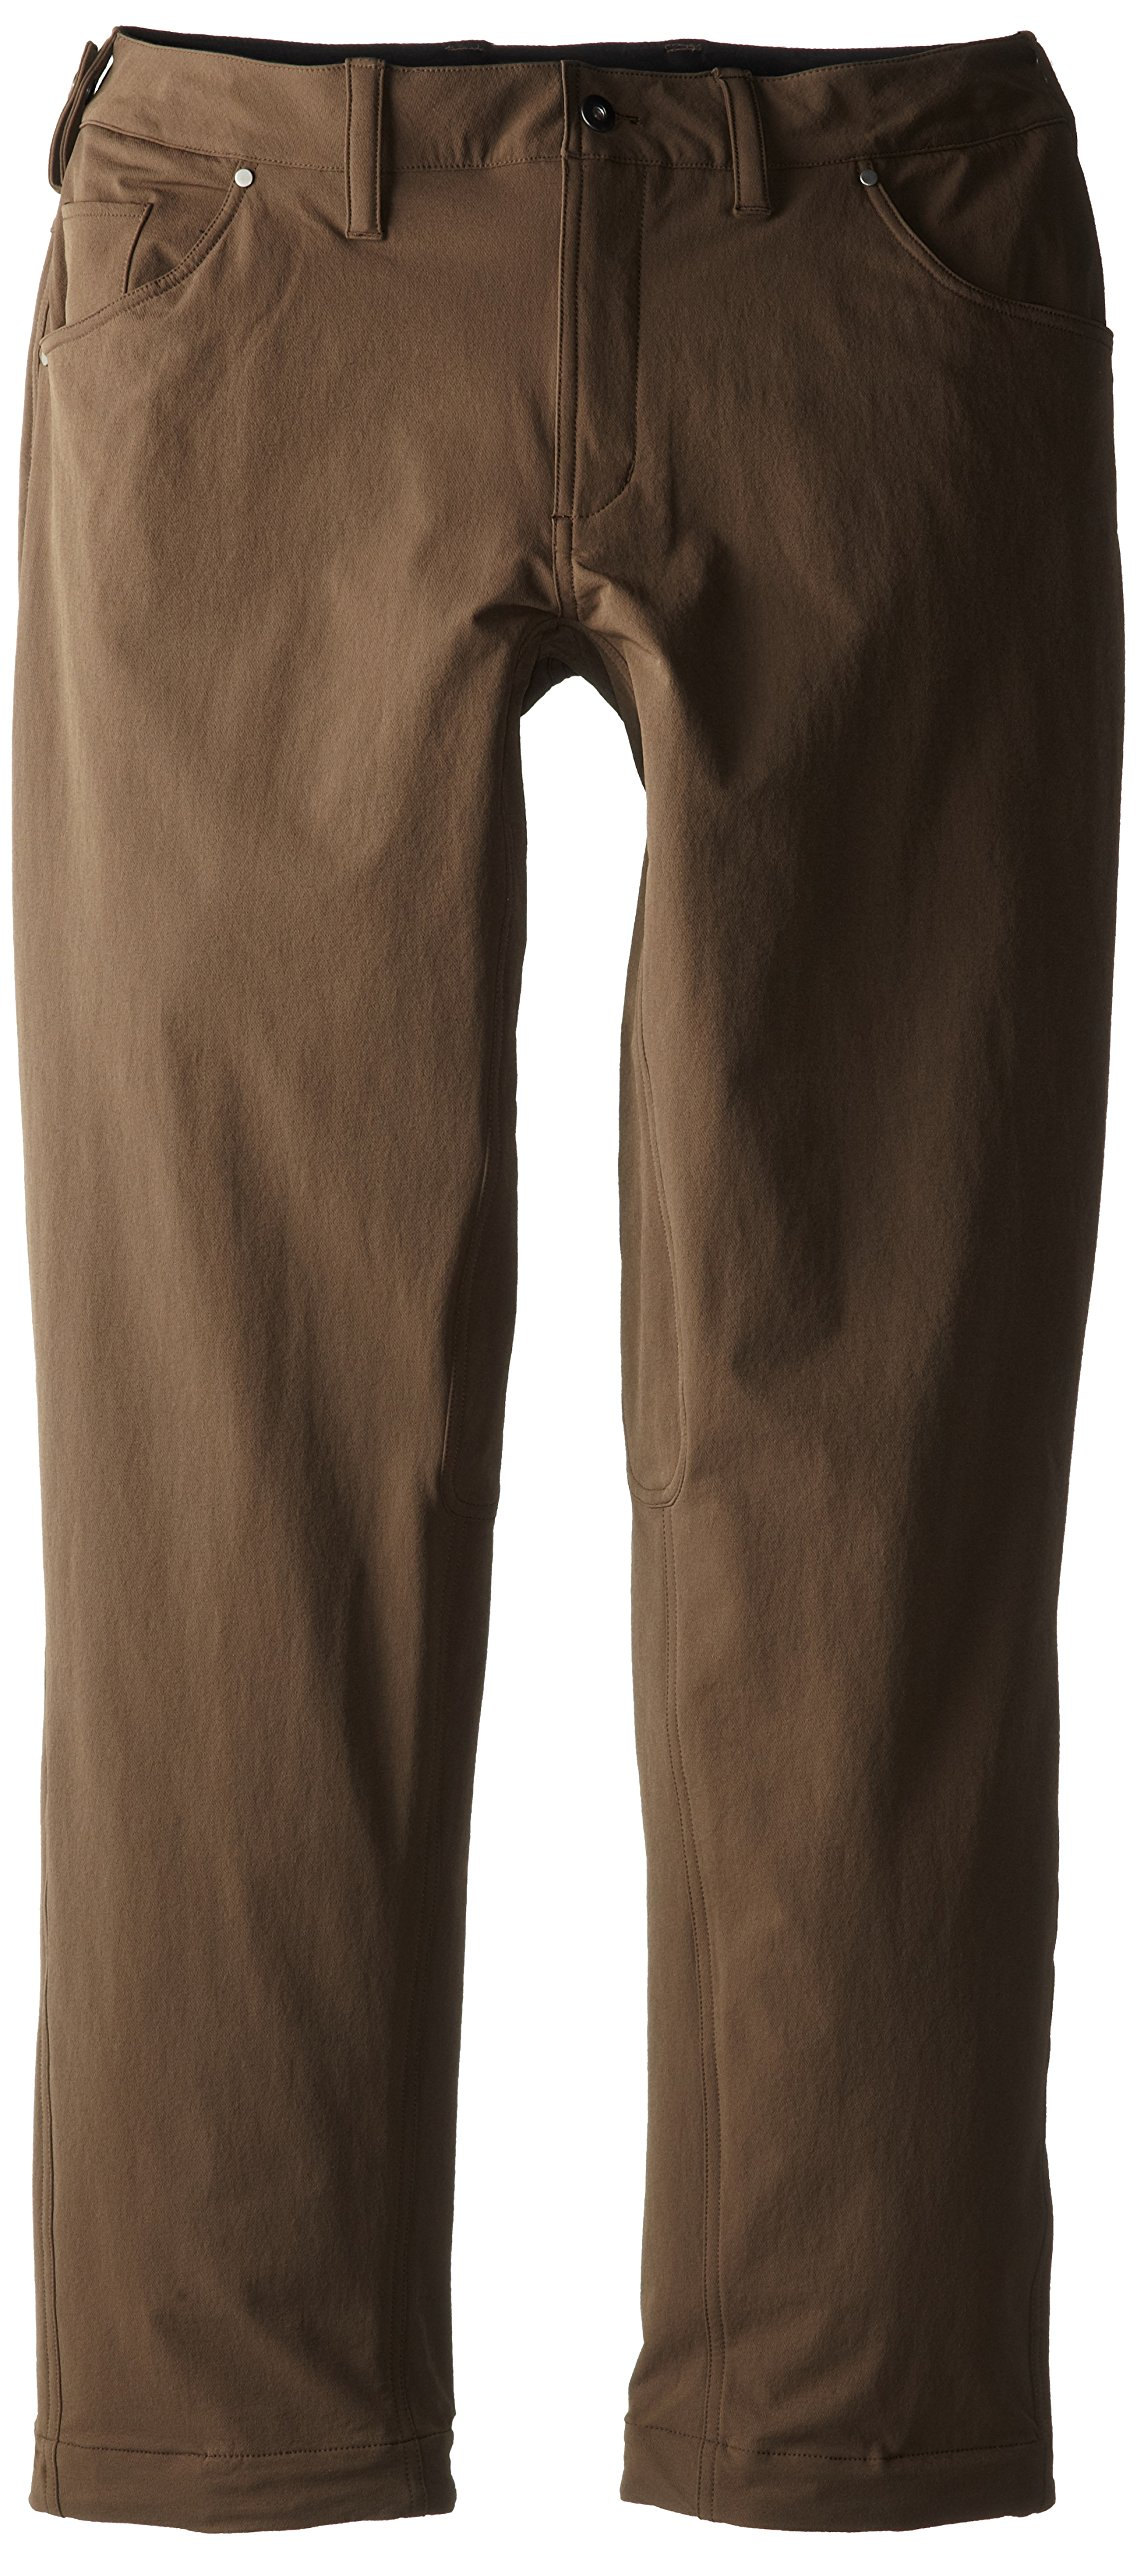 Showers Pass Men's Rogue Pant - Waterproof and Breathable Earth Size 38